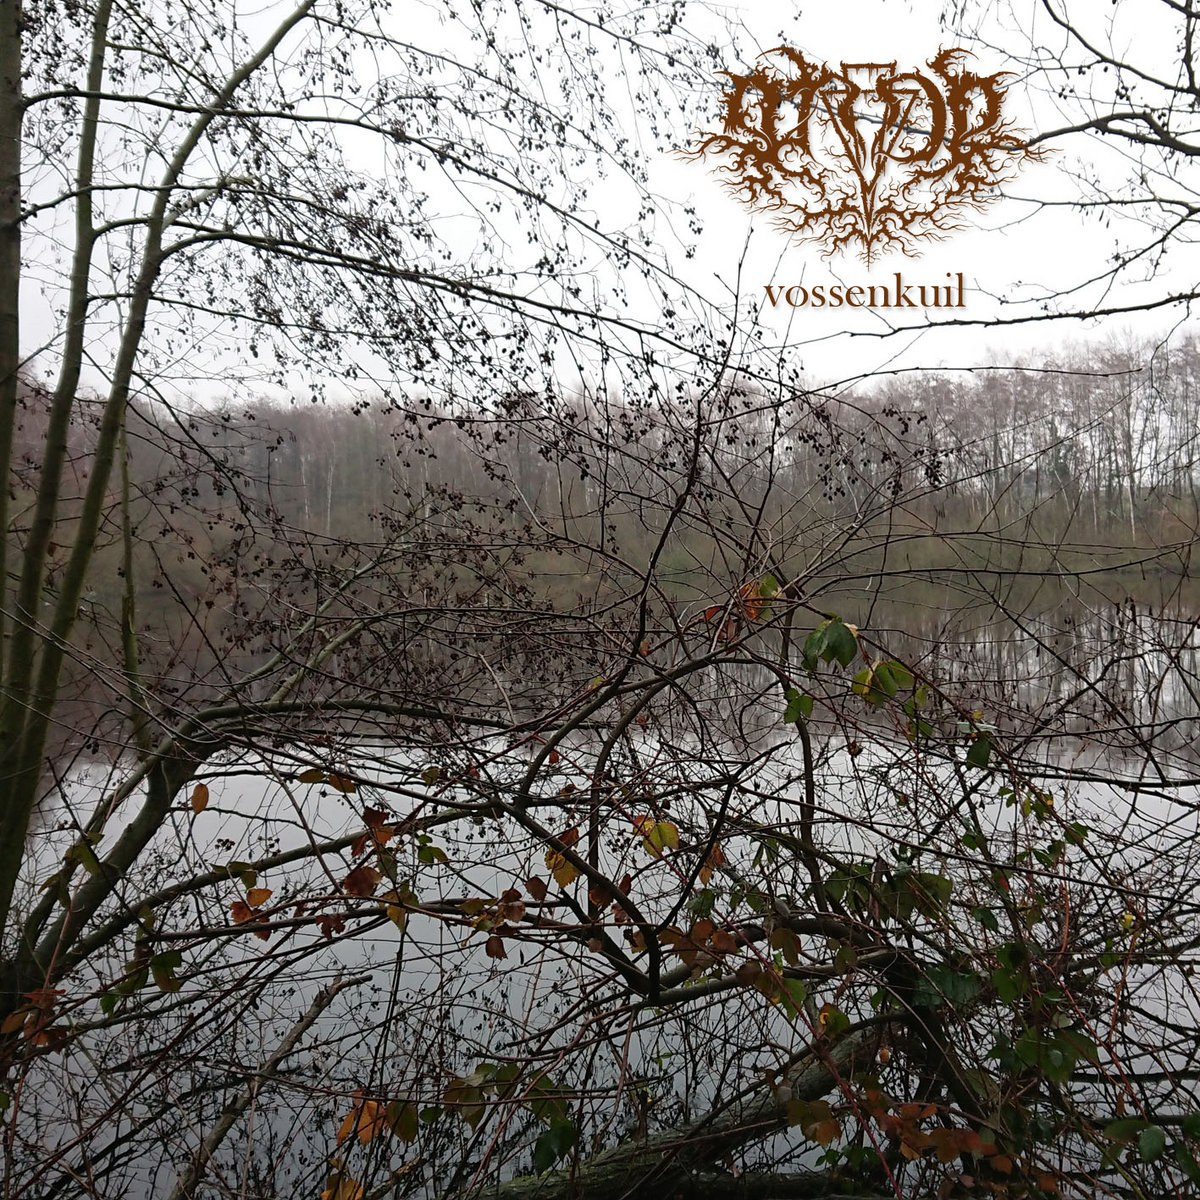 Review for Ande - Vossenkuil